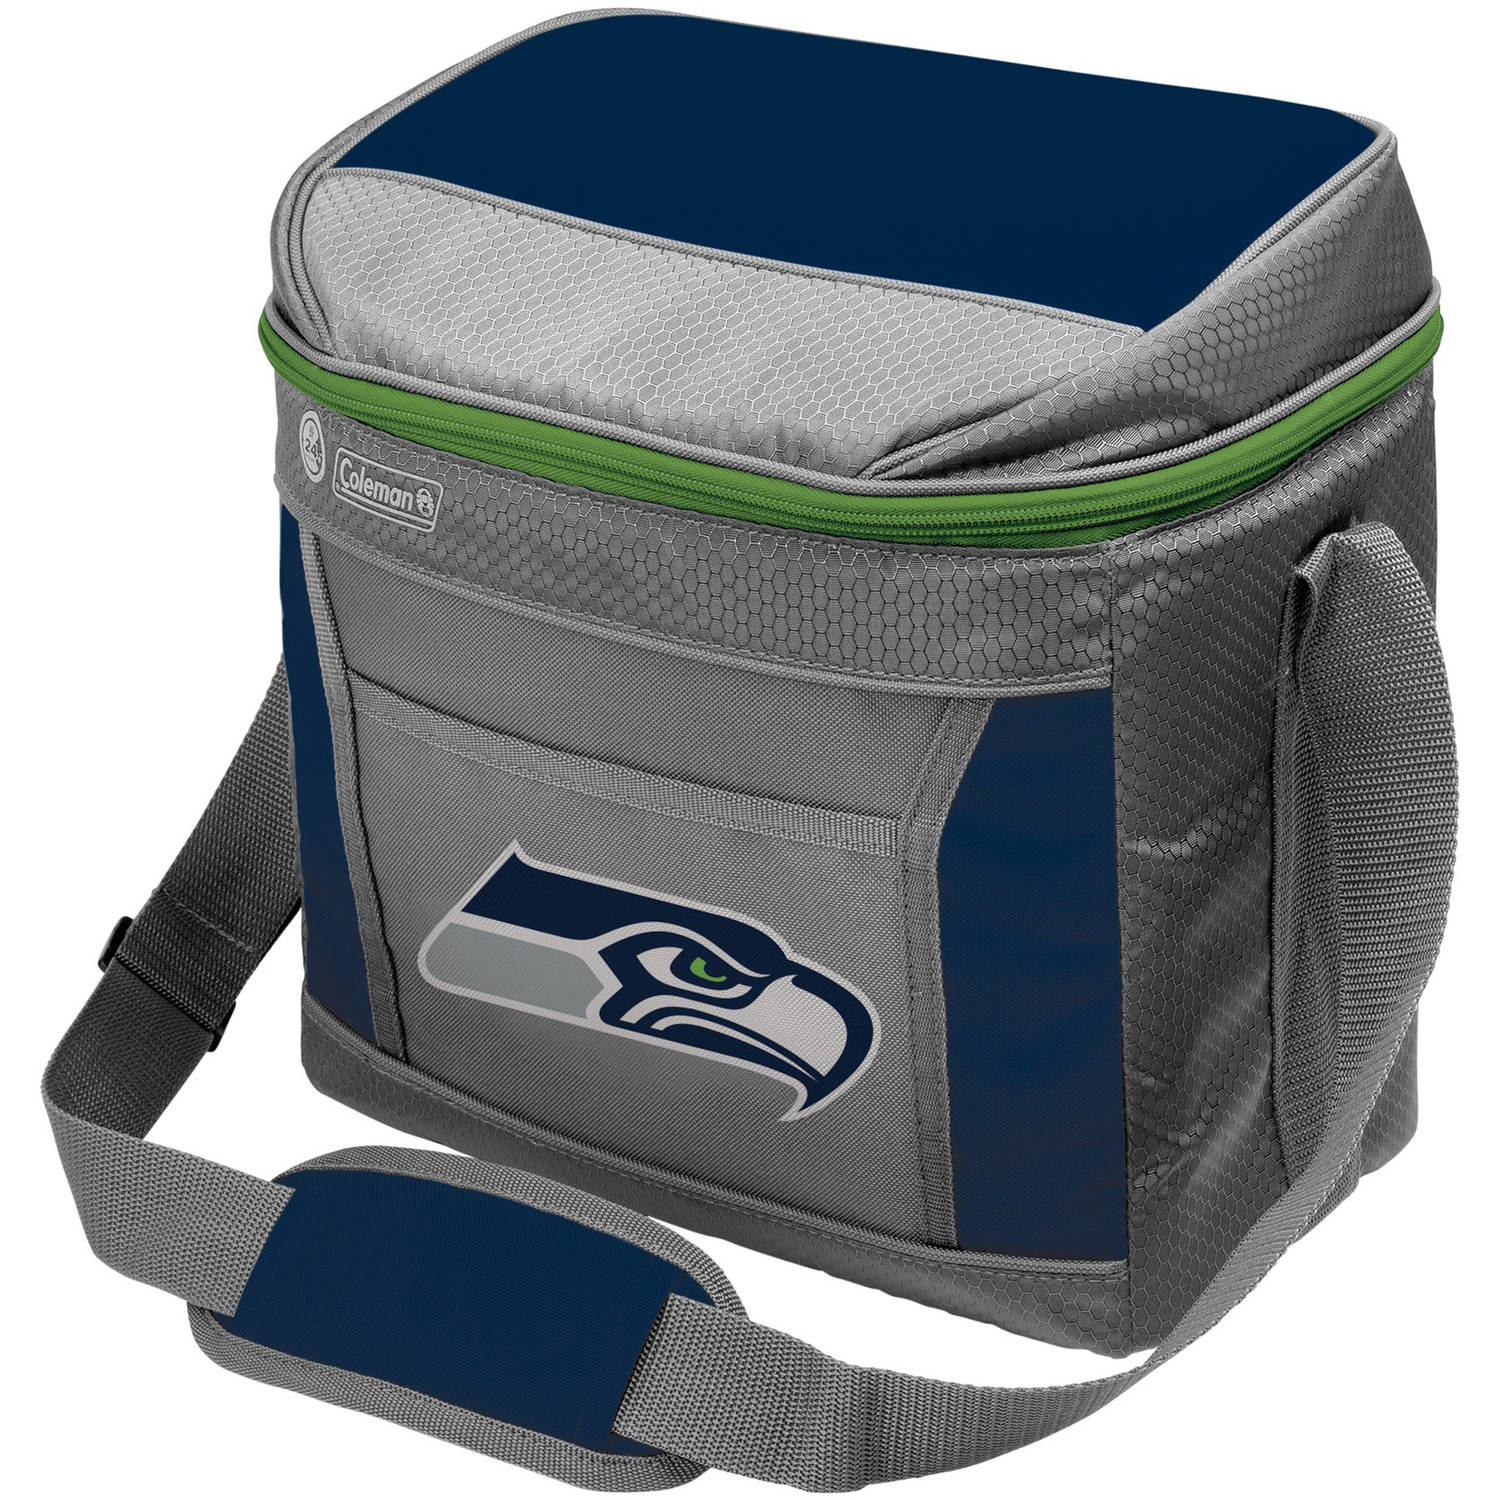 NFL 16-Can Soft-Sided Cooler, Seattle